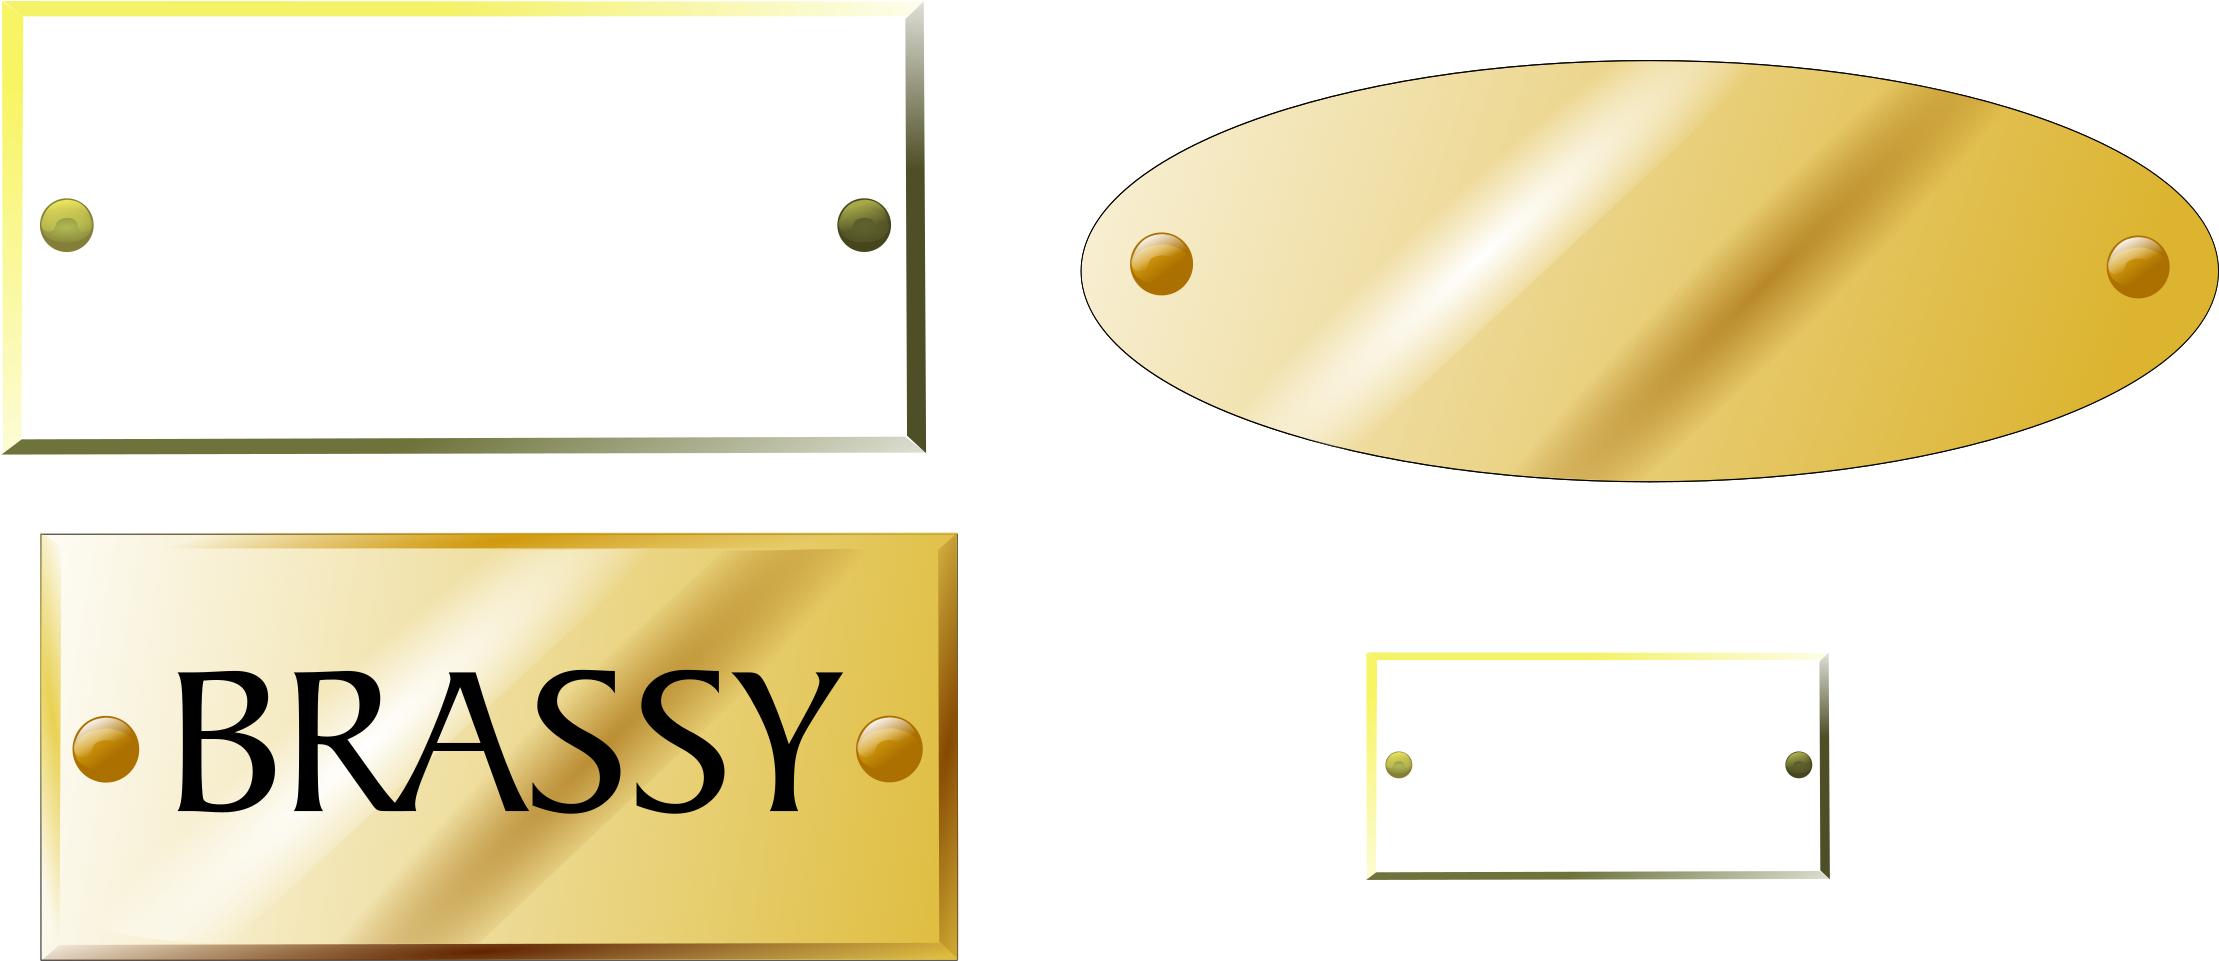 HD Clipart Brass Plaques Tags Big Image Png.